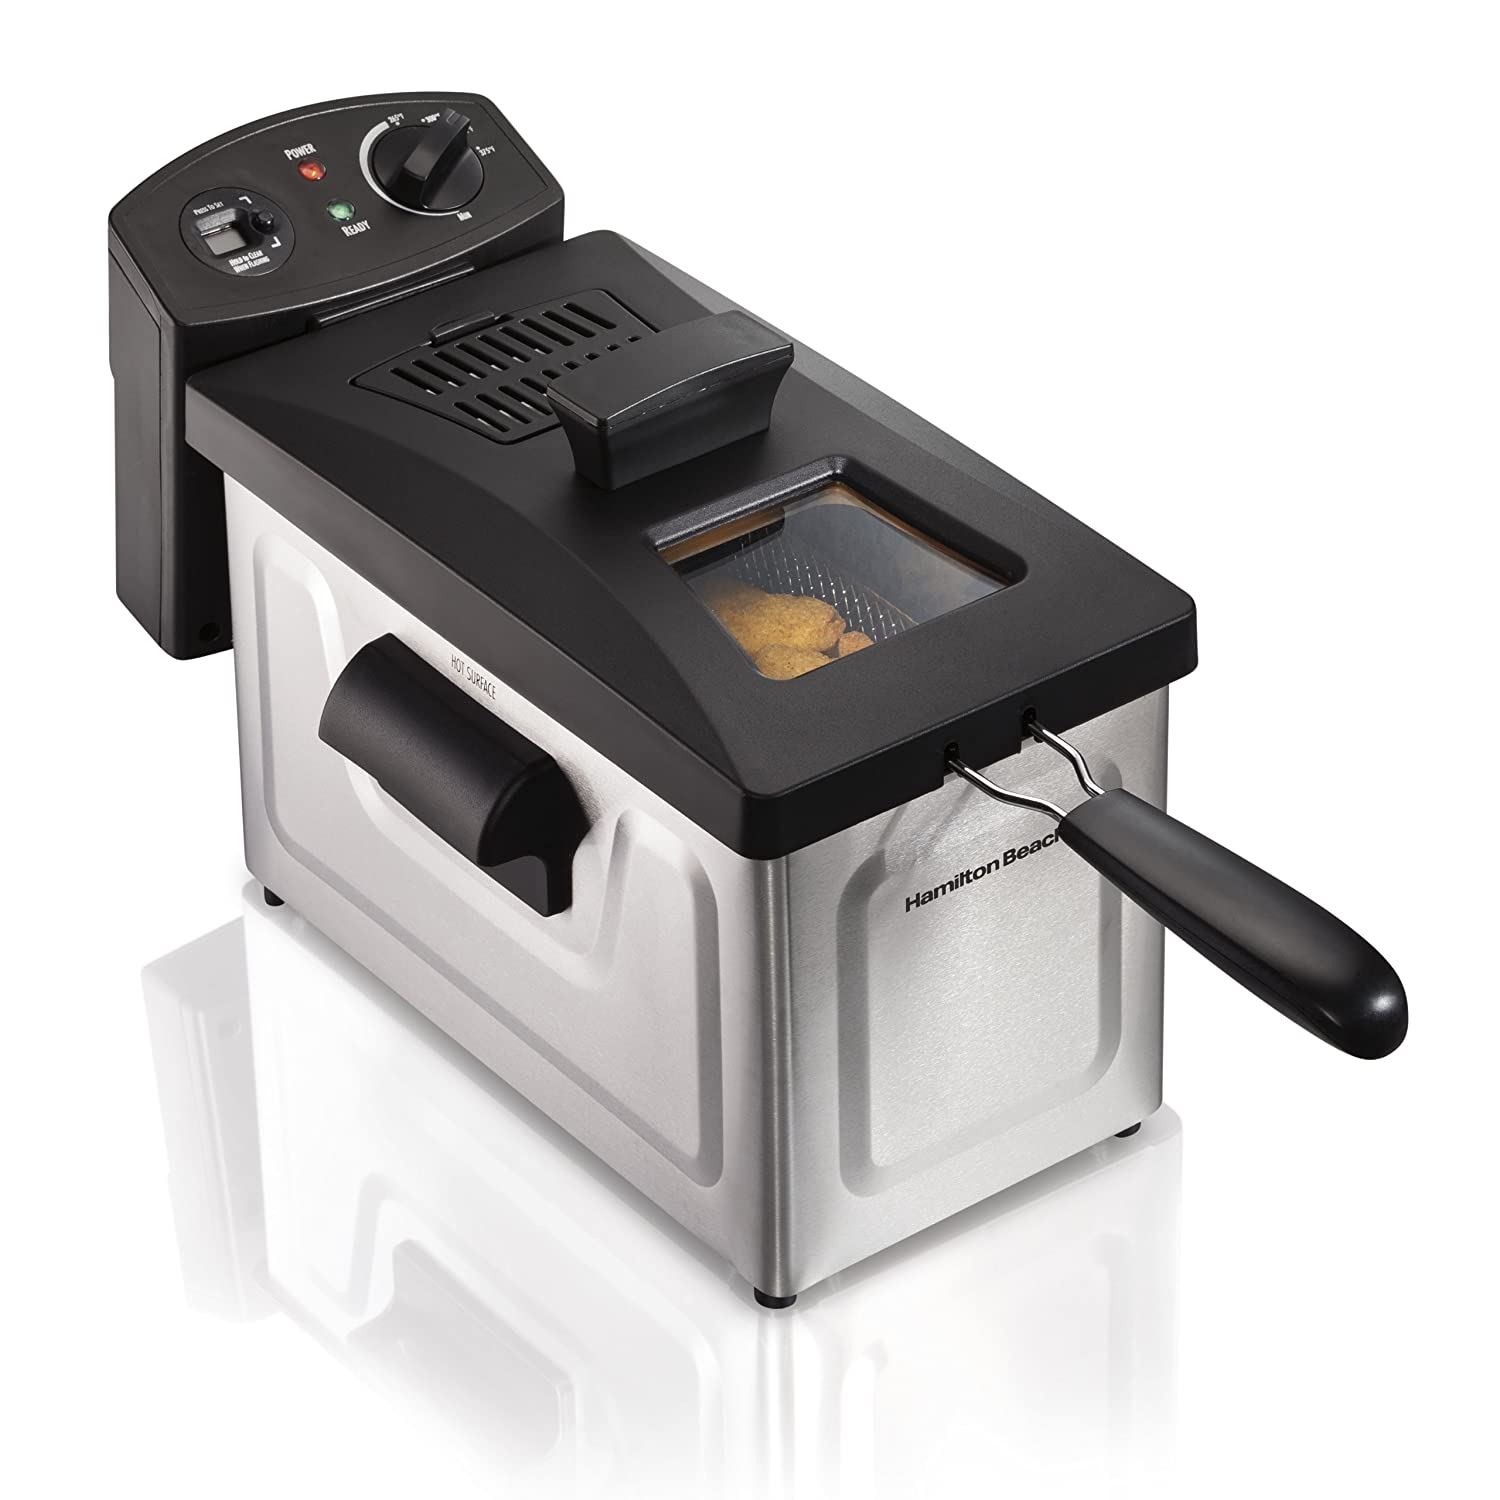 hamilton beach deep fryer 35035c manual